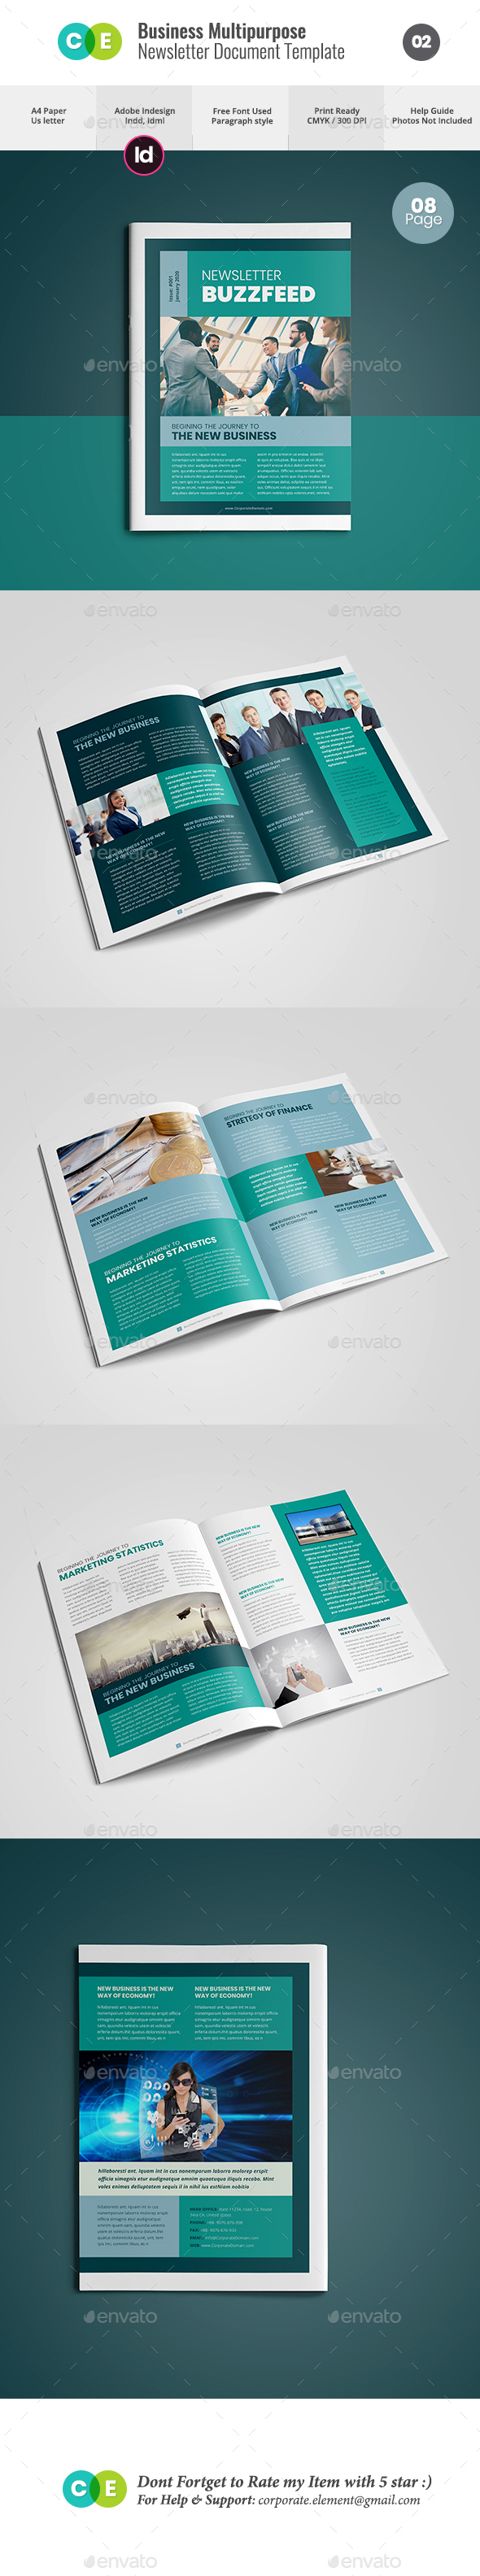 GraphicRiver Newsletter For Multipurpose Business V02 21178298